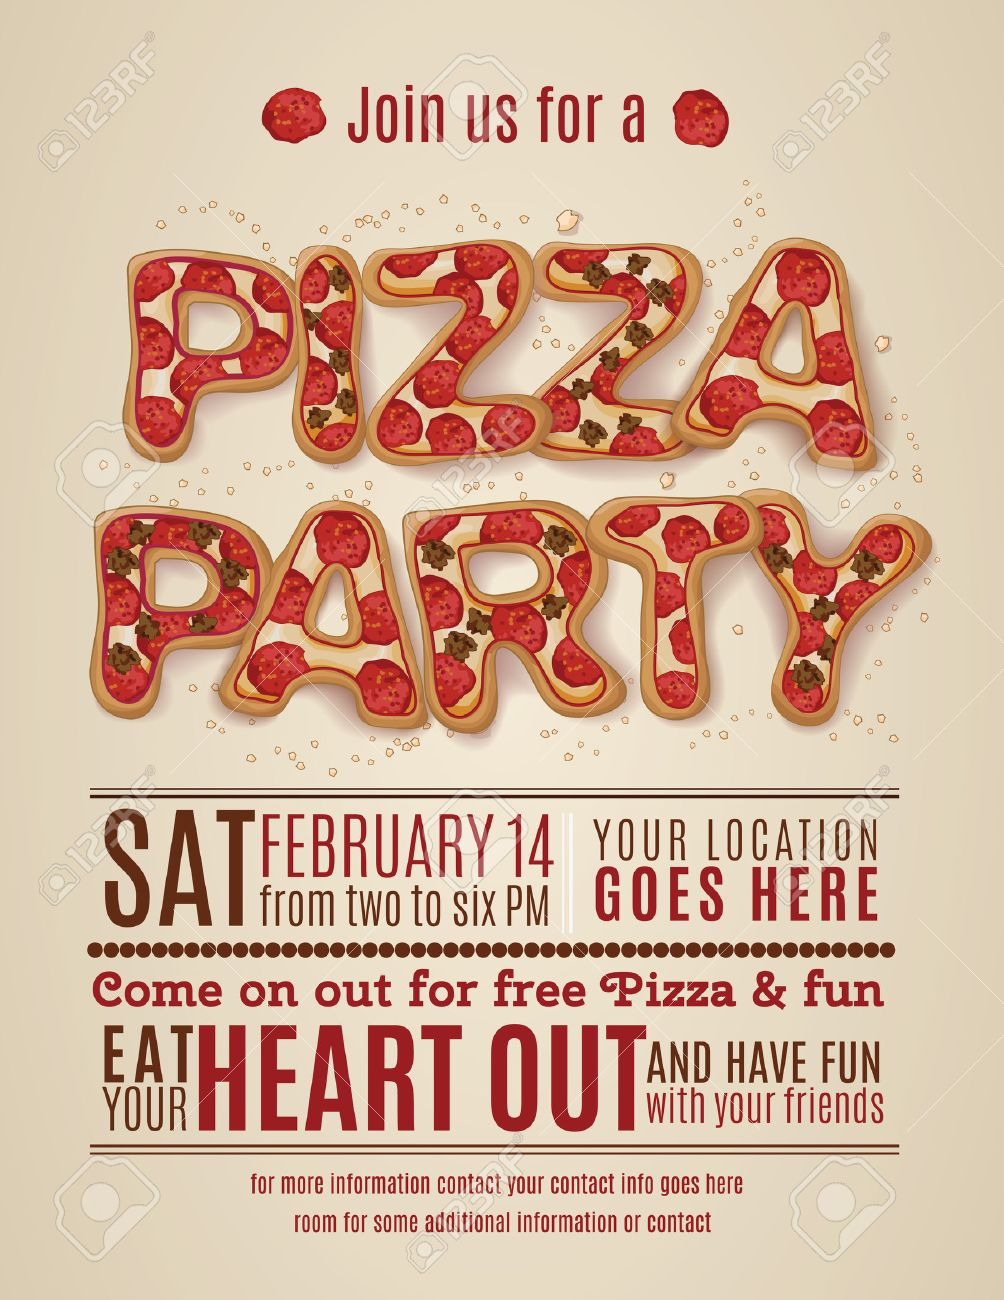 Vector Pizza Party Flyer Invitation Template Design Royalty Free